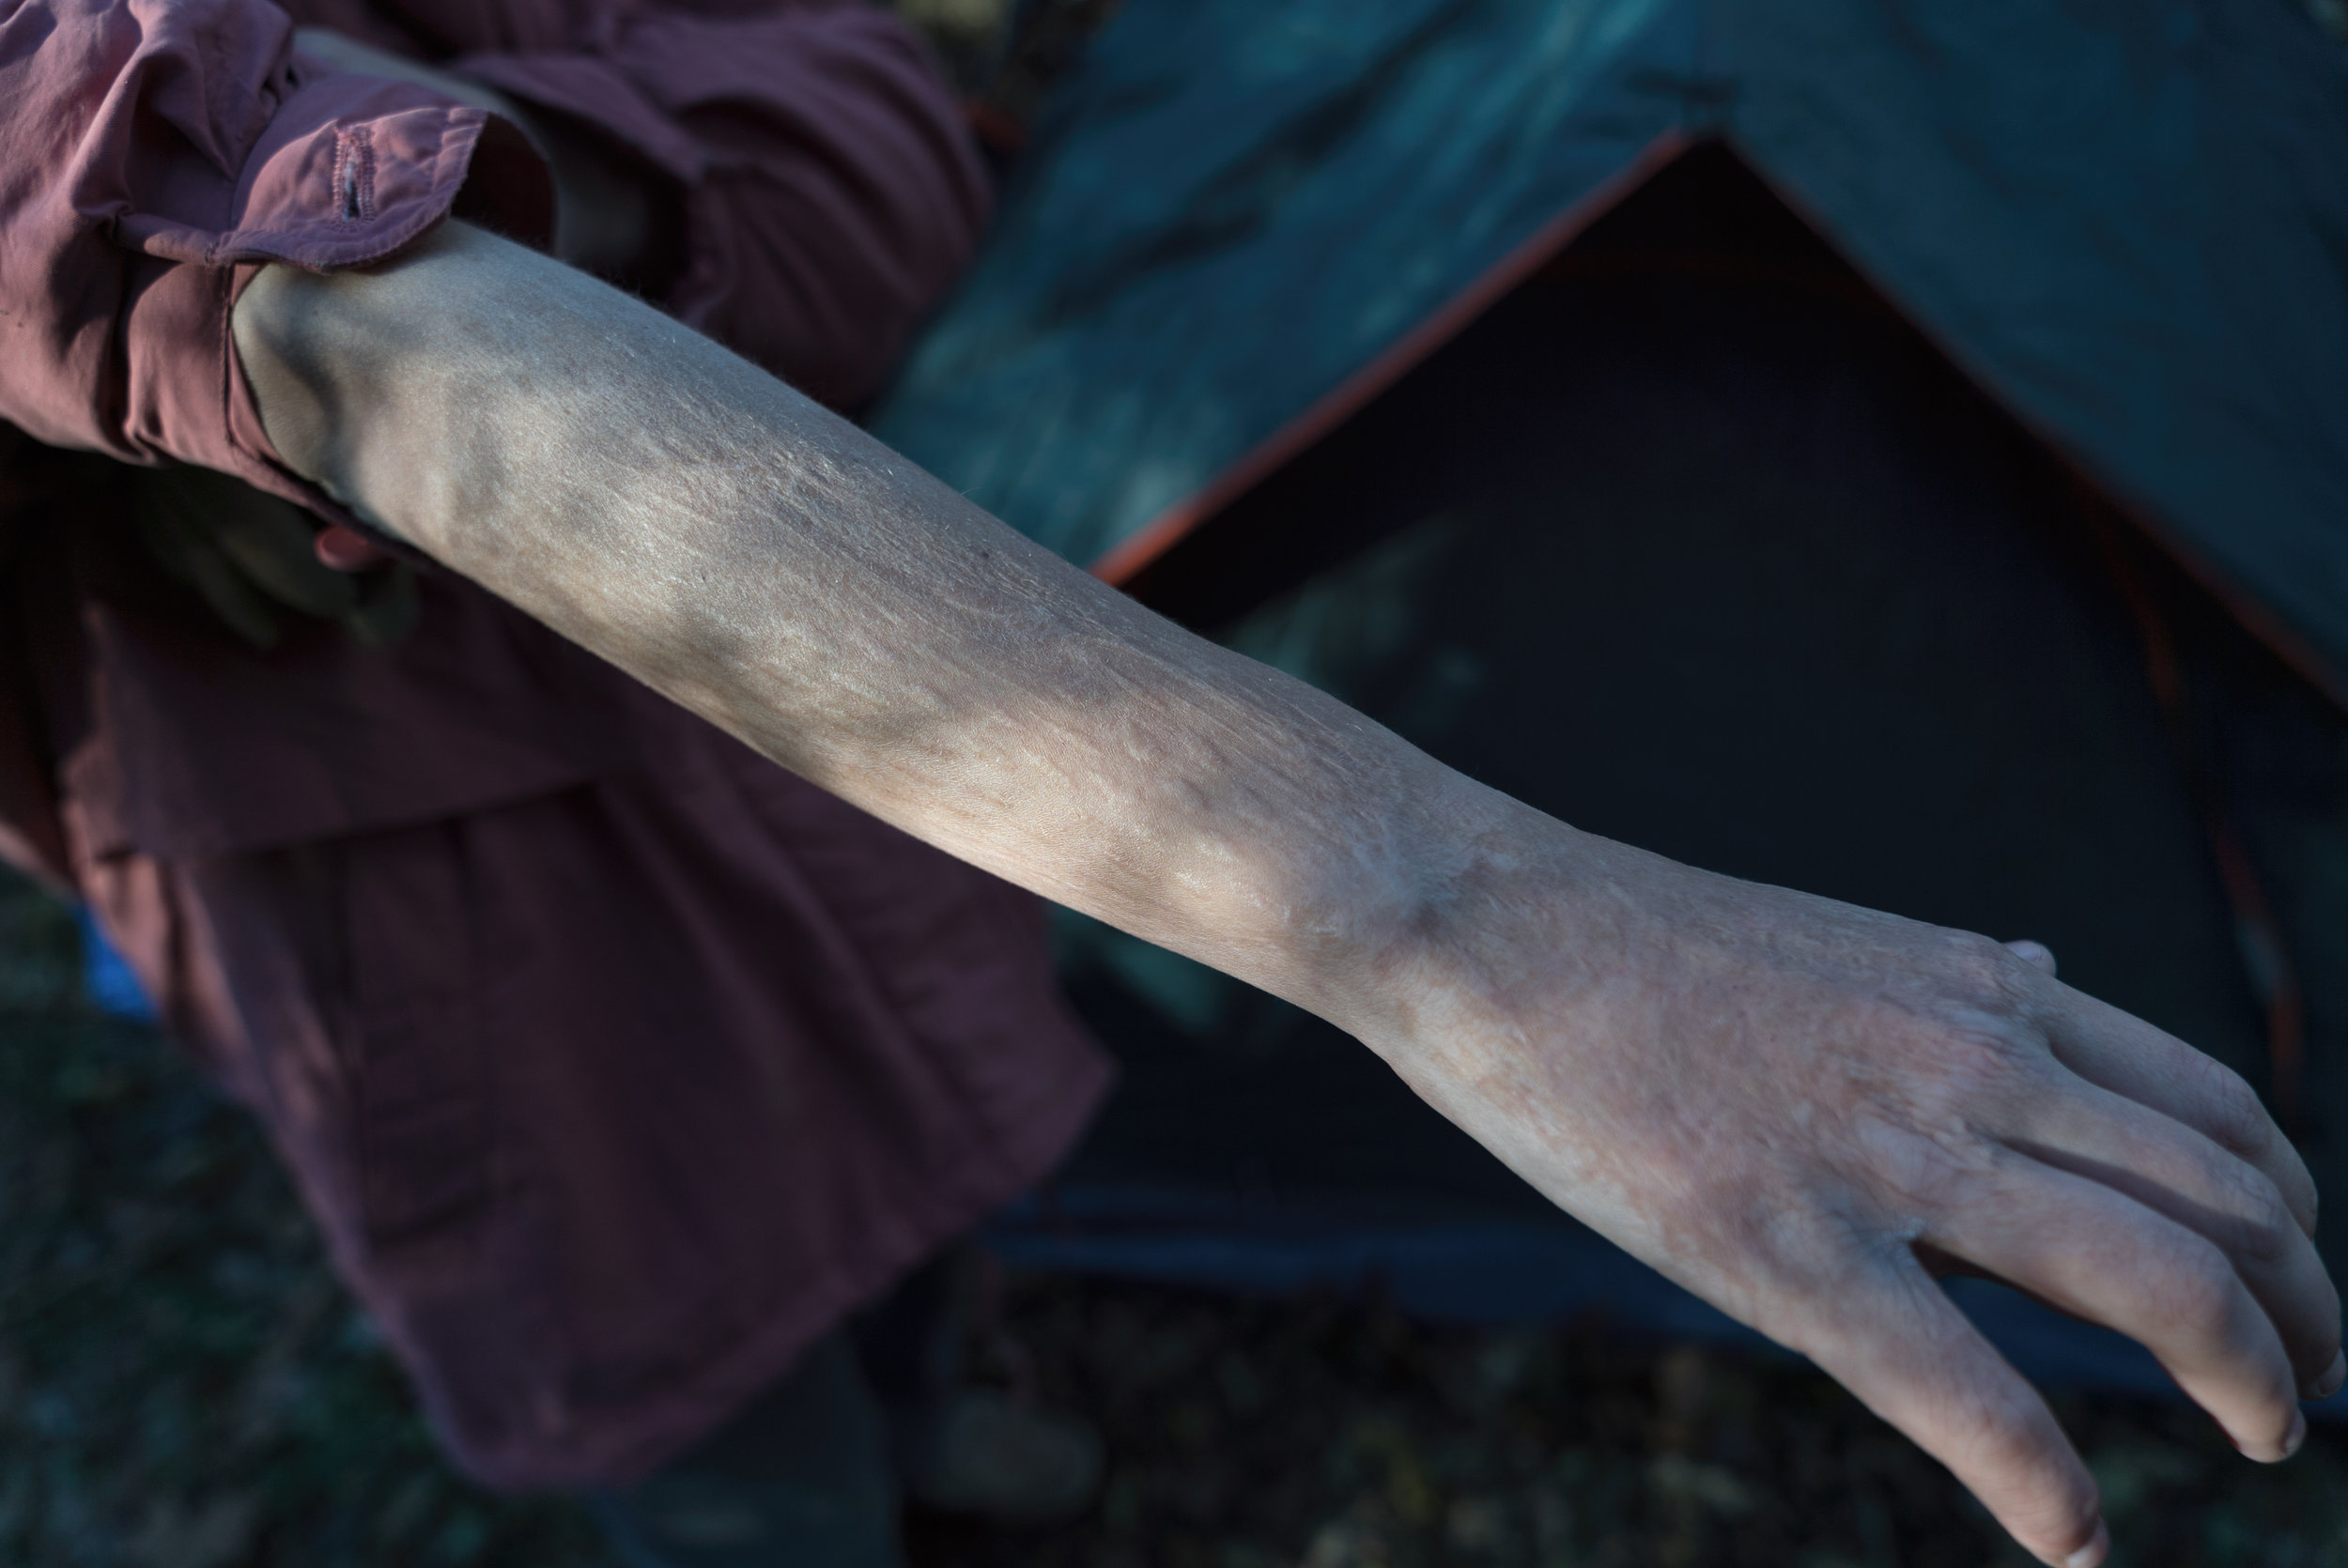 Crystal has burn scars on her arms, hands and legs from when her father allegedly poured scalding hot coffee on her.